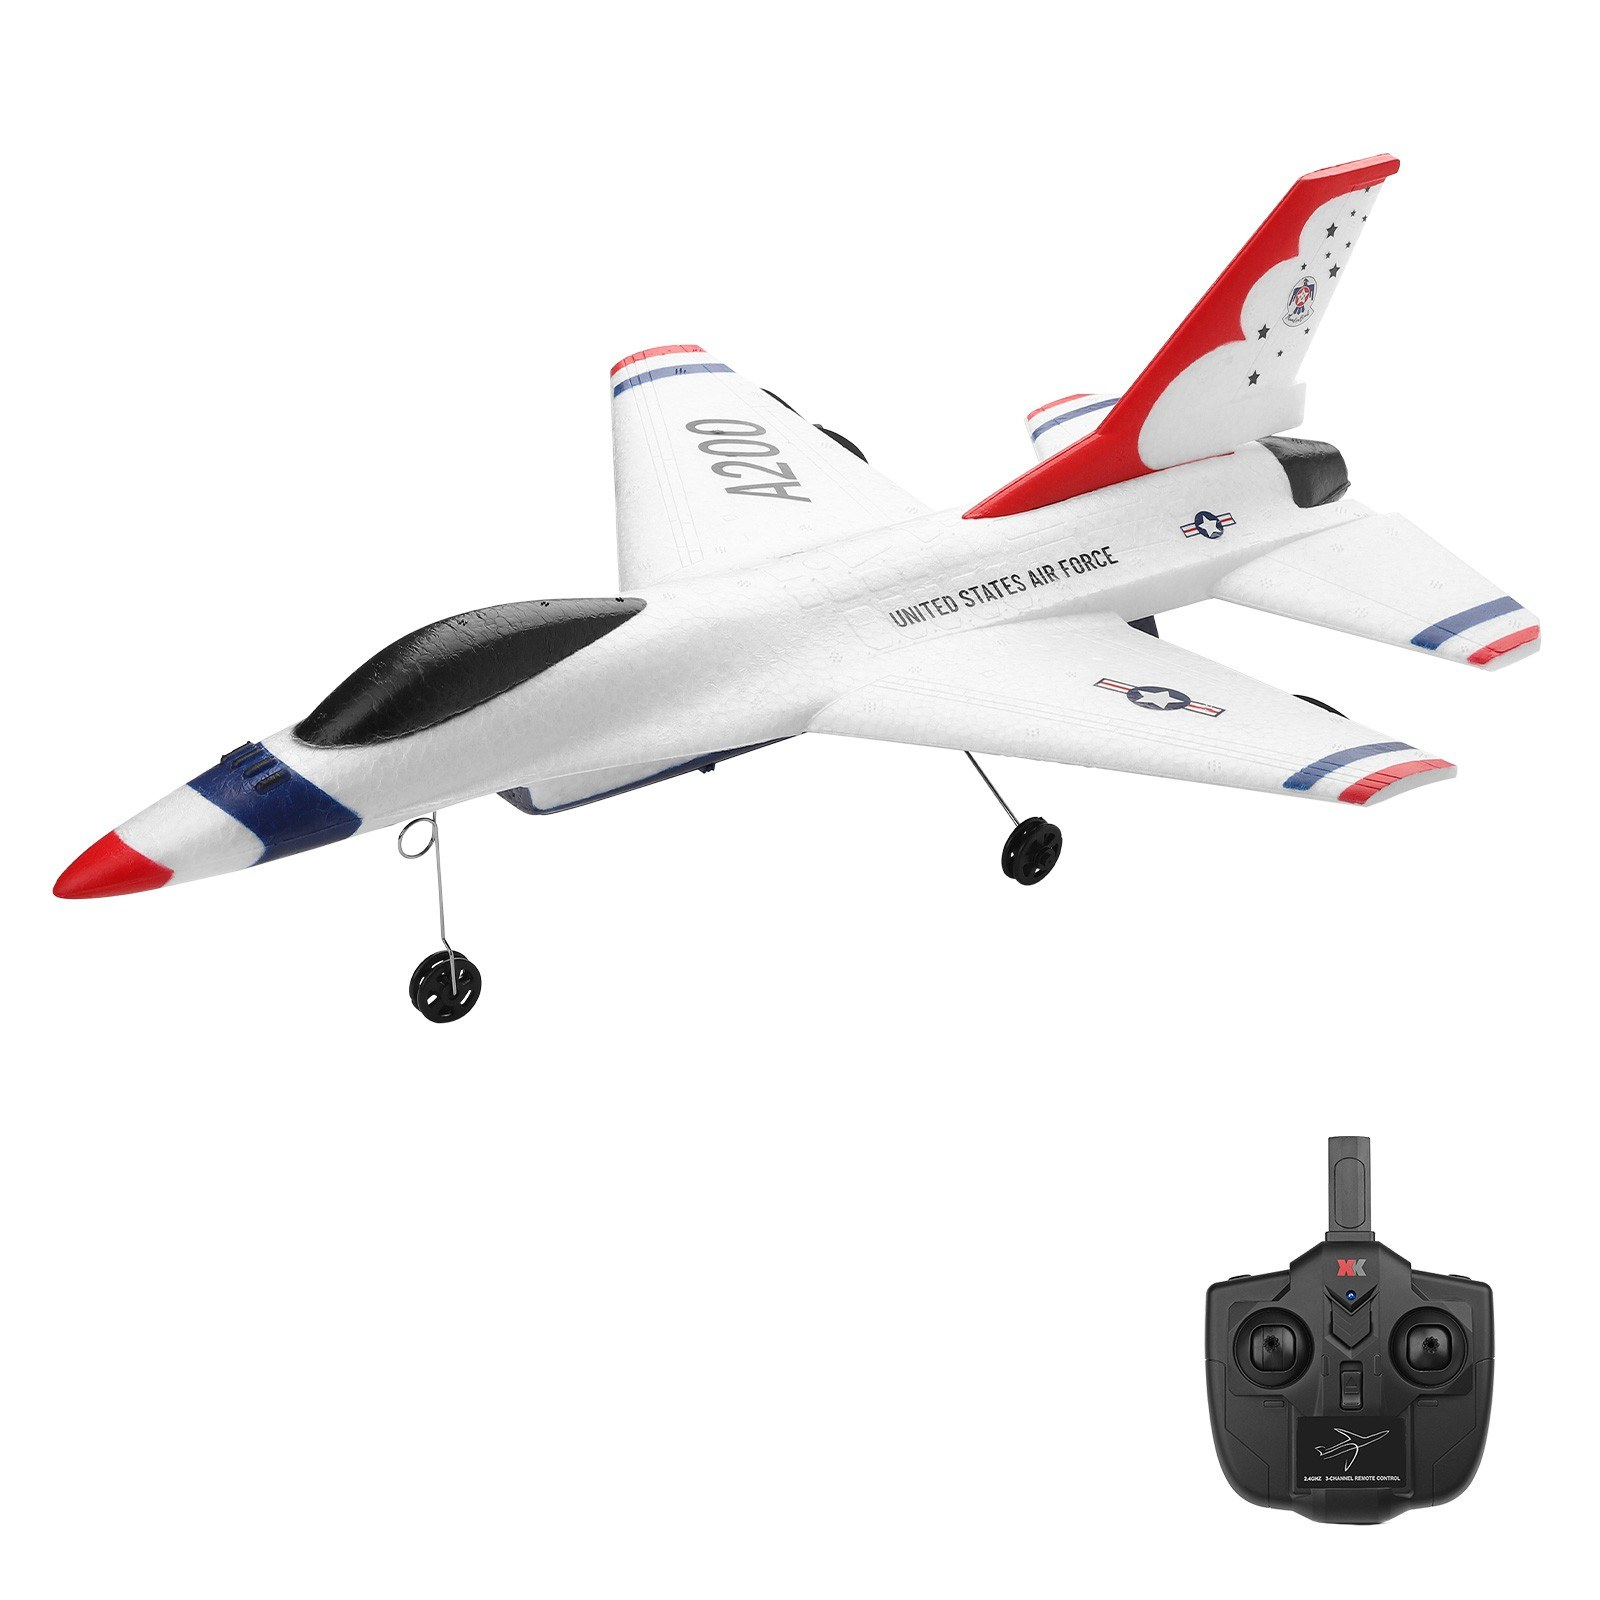 tomtop.com - 52% OFF Wltoys XK A200 F-16B RC Airplane, Limited Offers $53.99